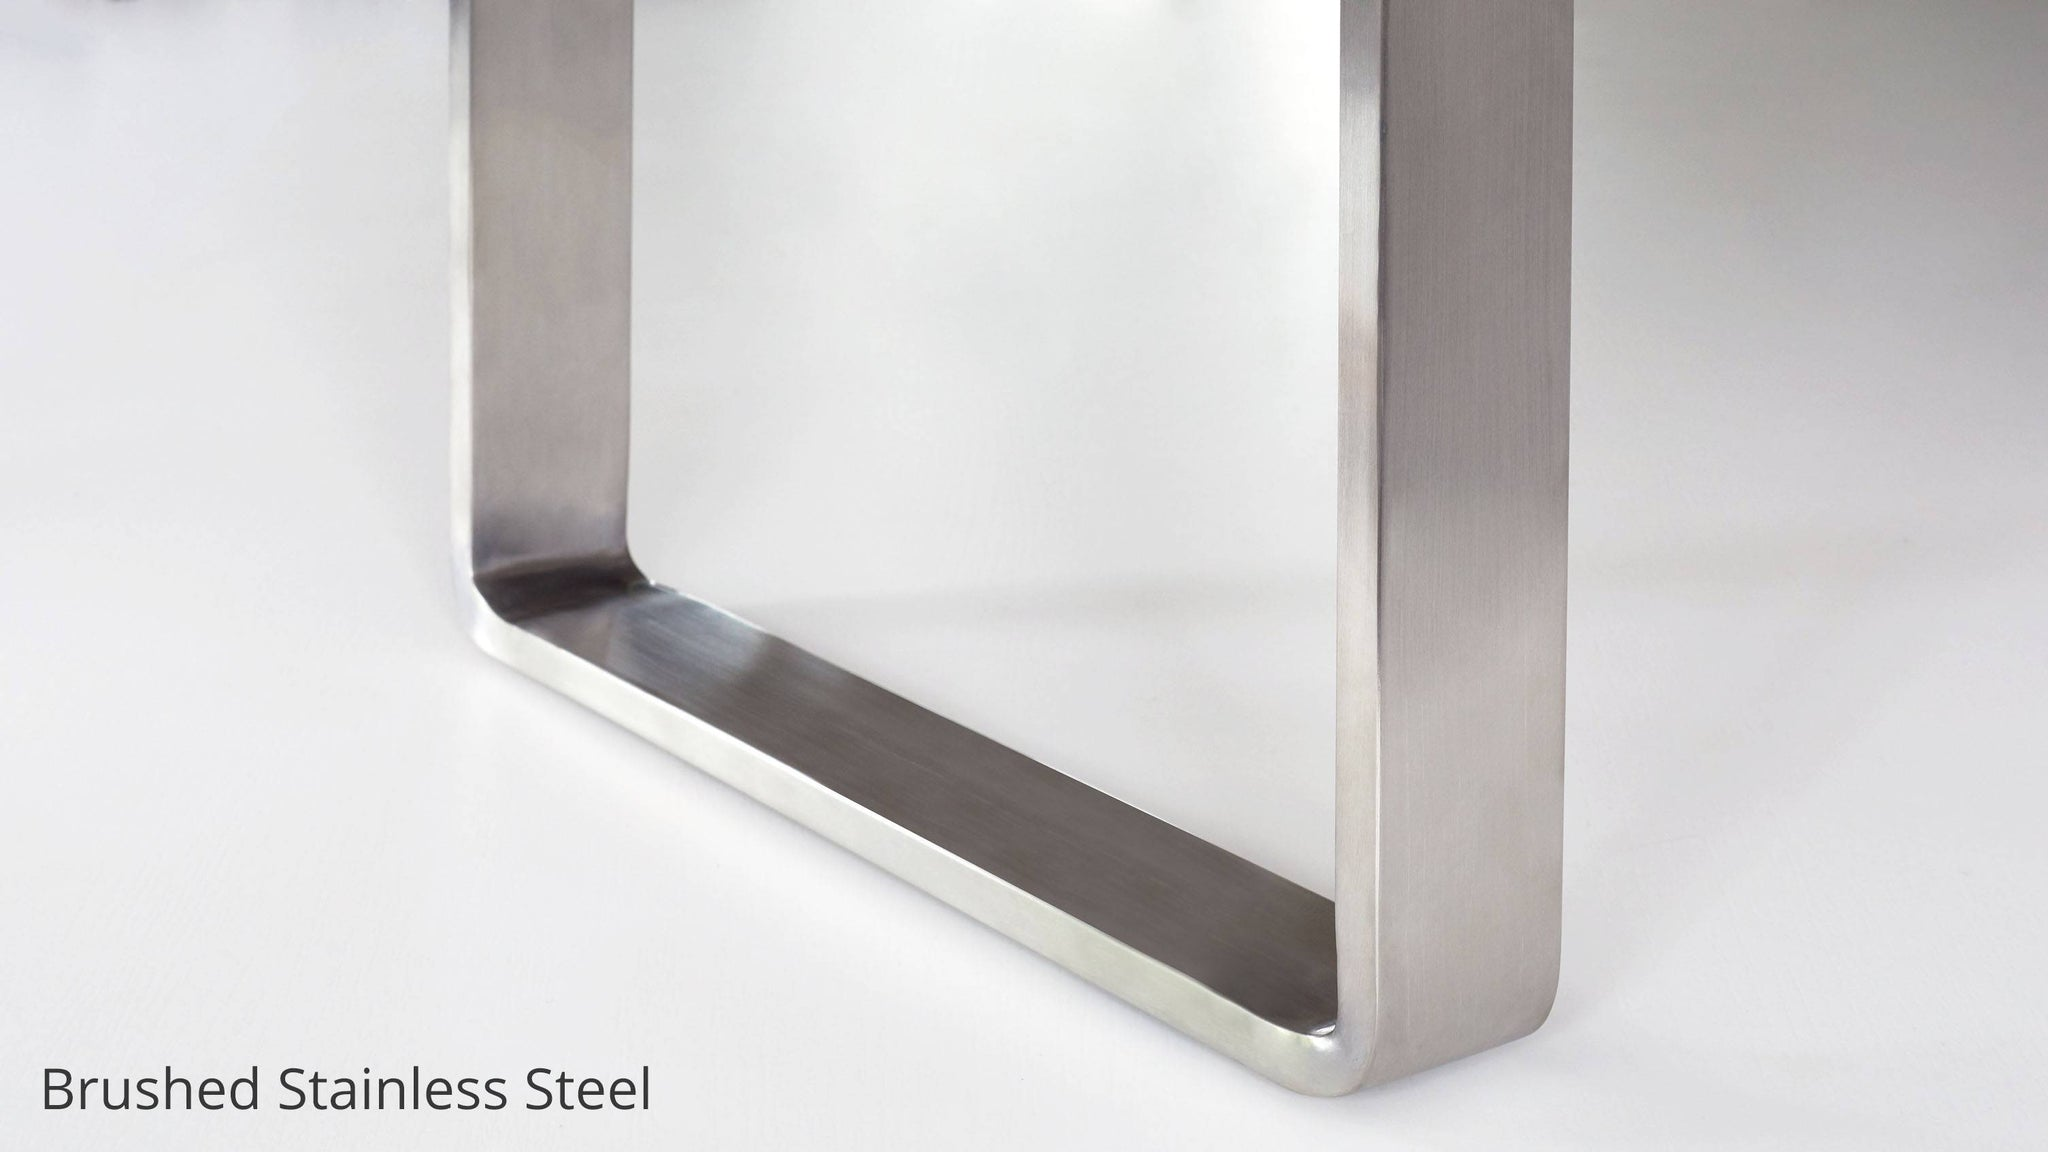 Brushed stainless steel benches